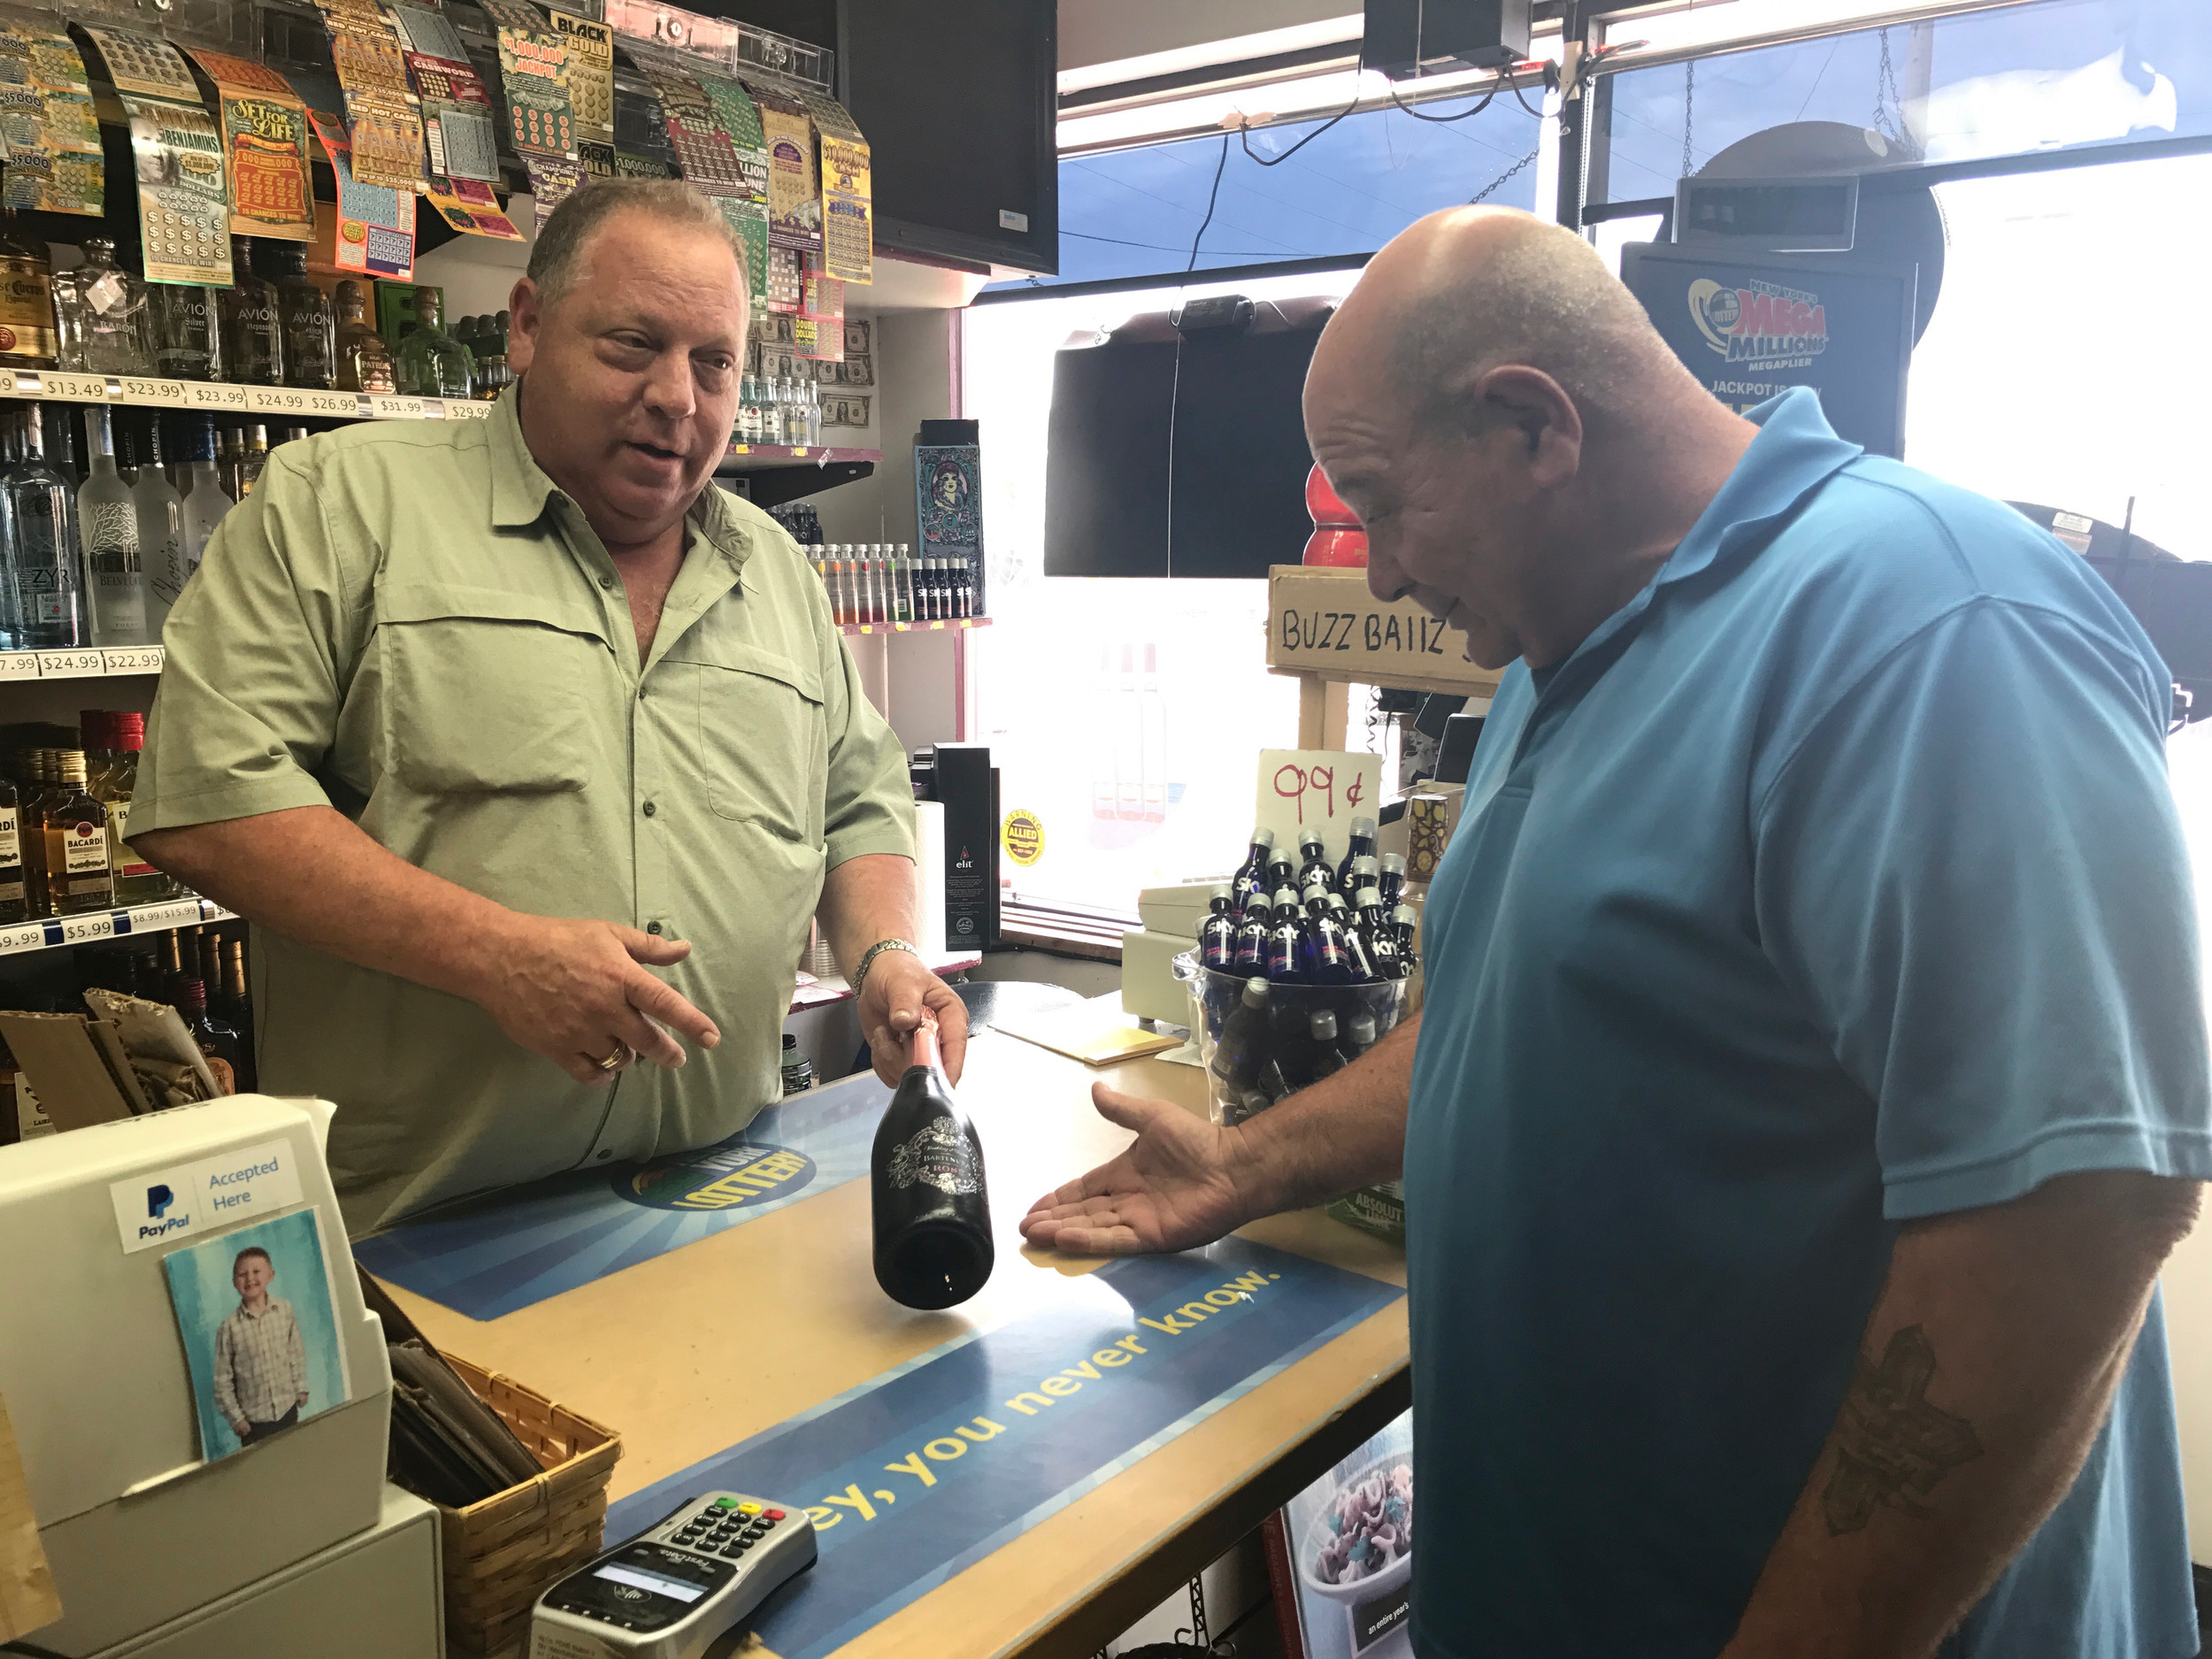 Peninsula Wines owner James Cari, left, discussed the texture of this rosé with store employee Frank Garraputa.